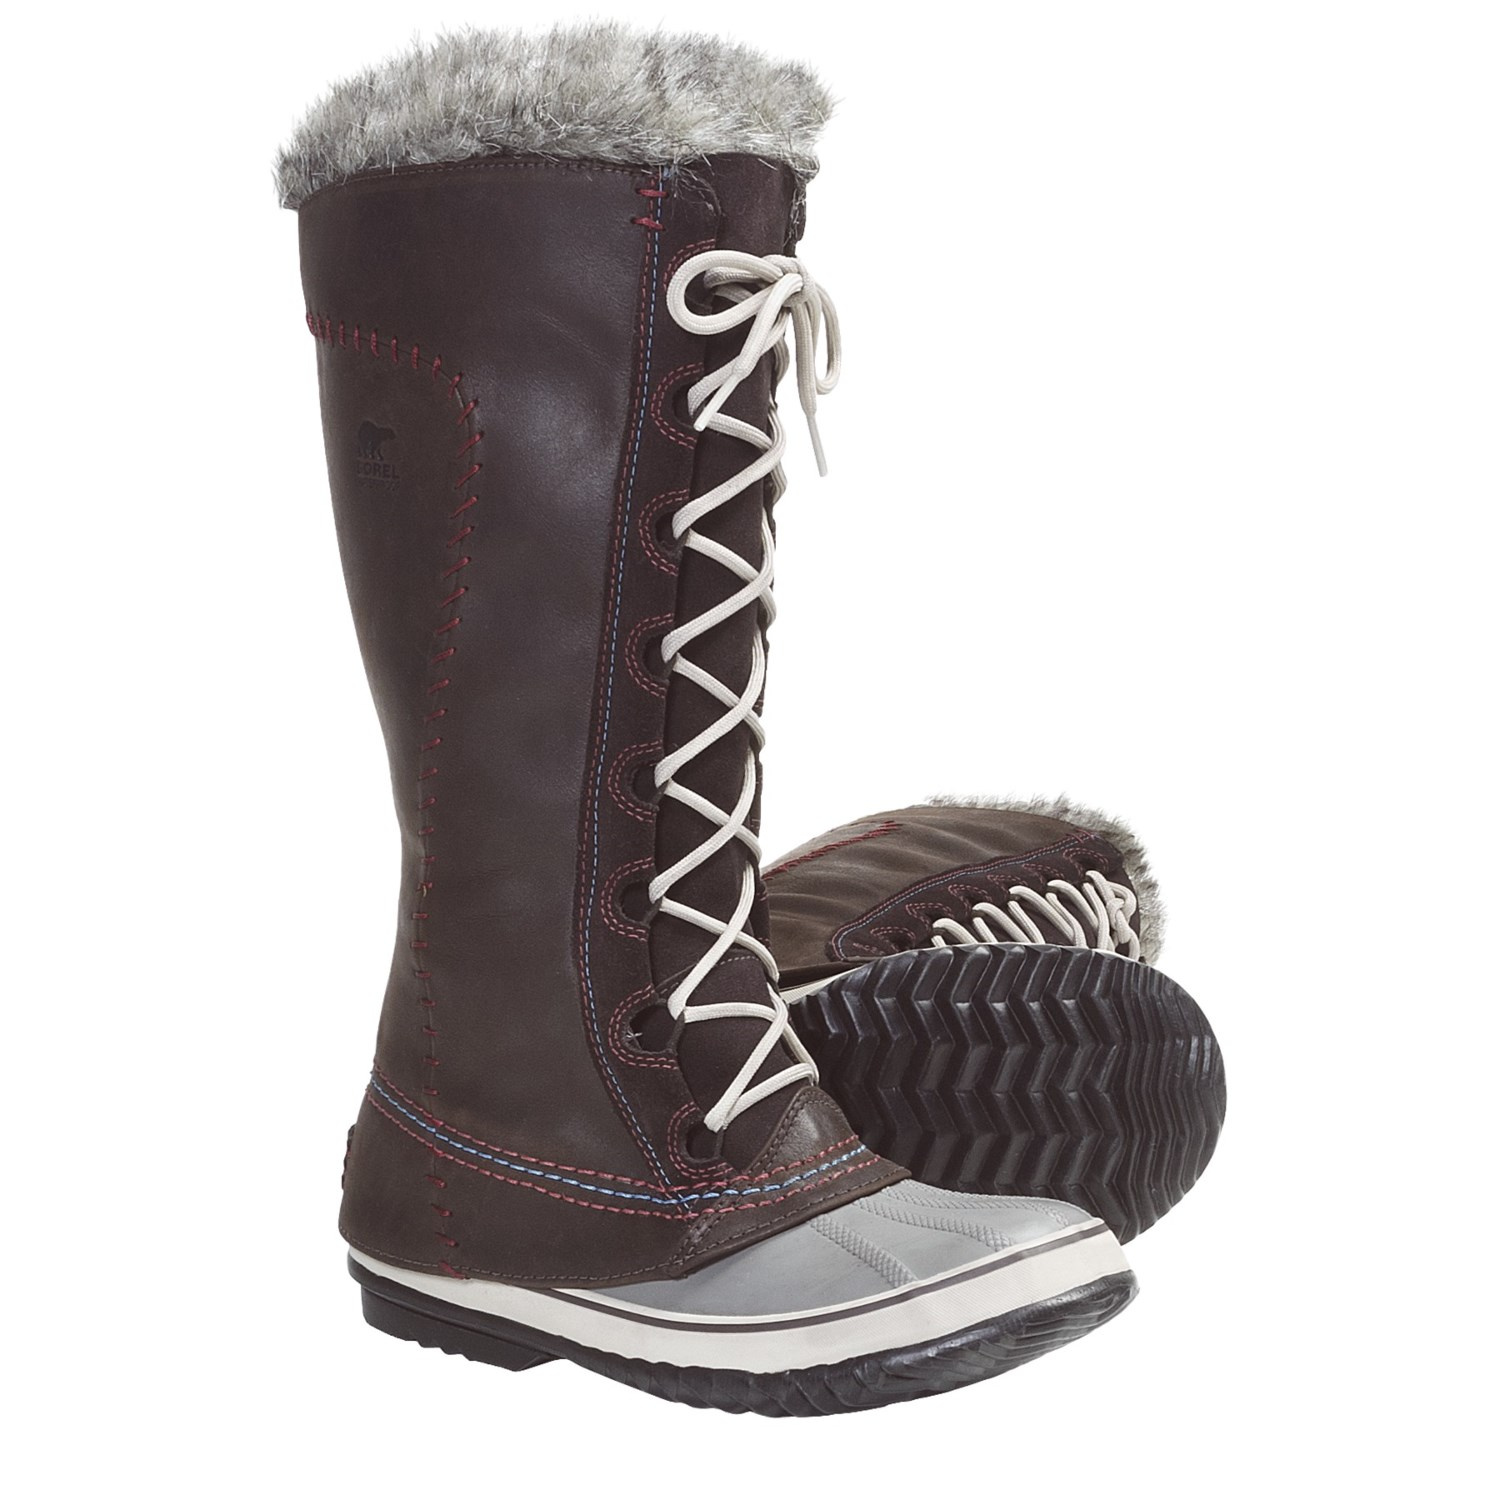 Womens Knee High Waterproof Snow Boots (with image) · PeachCobbler ...